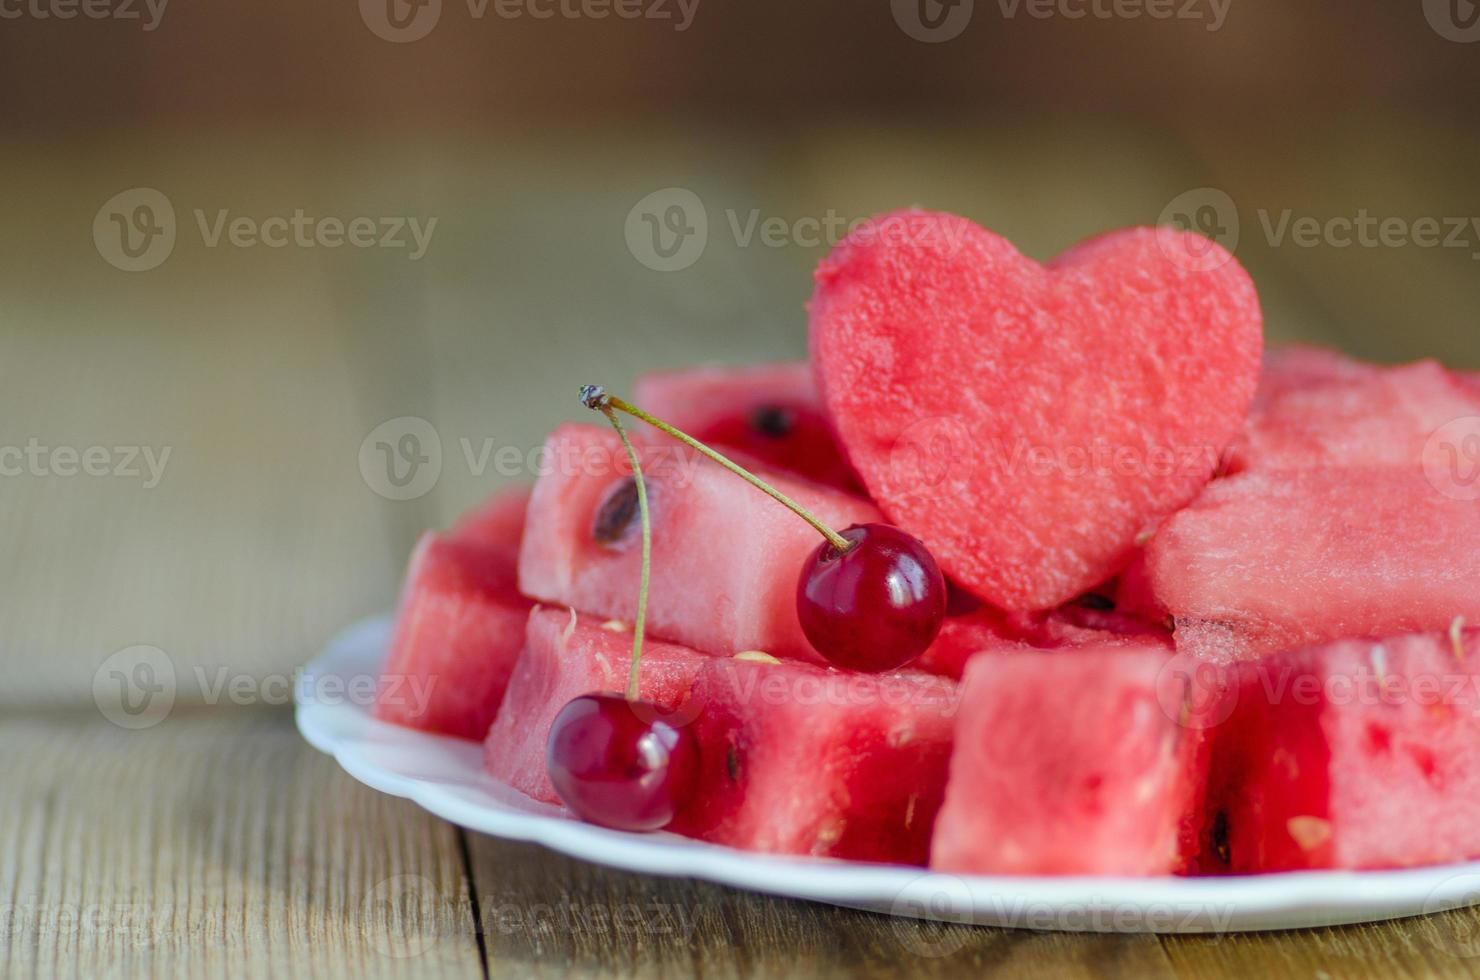 the heart of the watermelon slices of watermelon photo